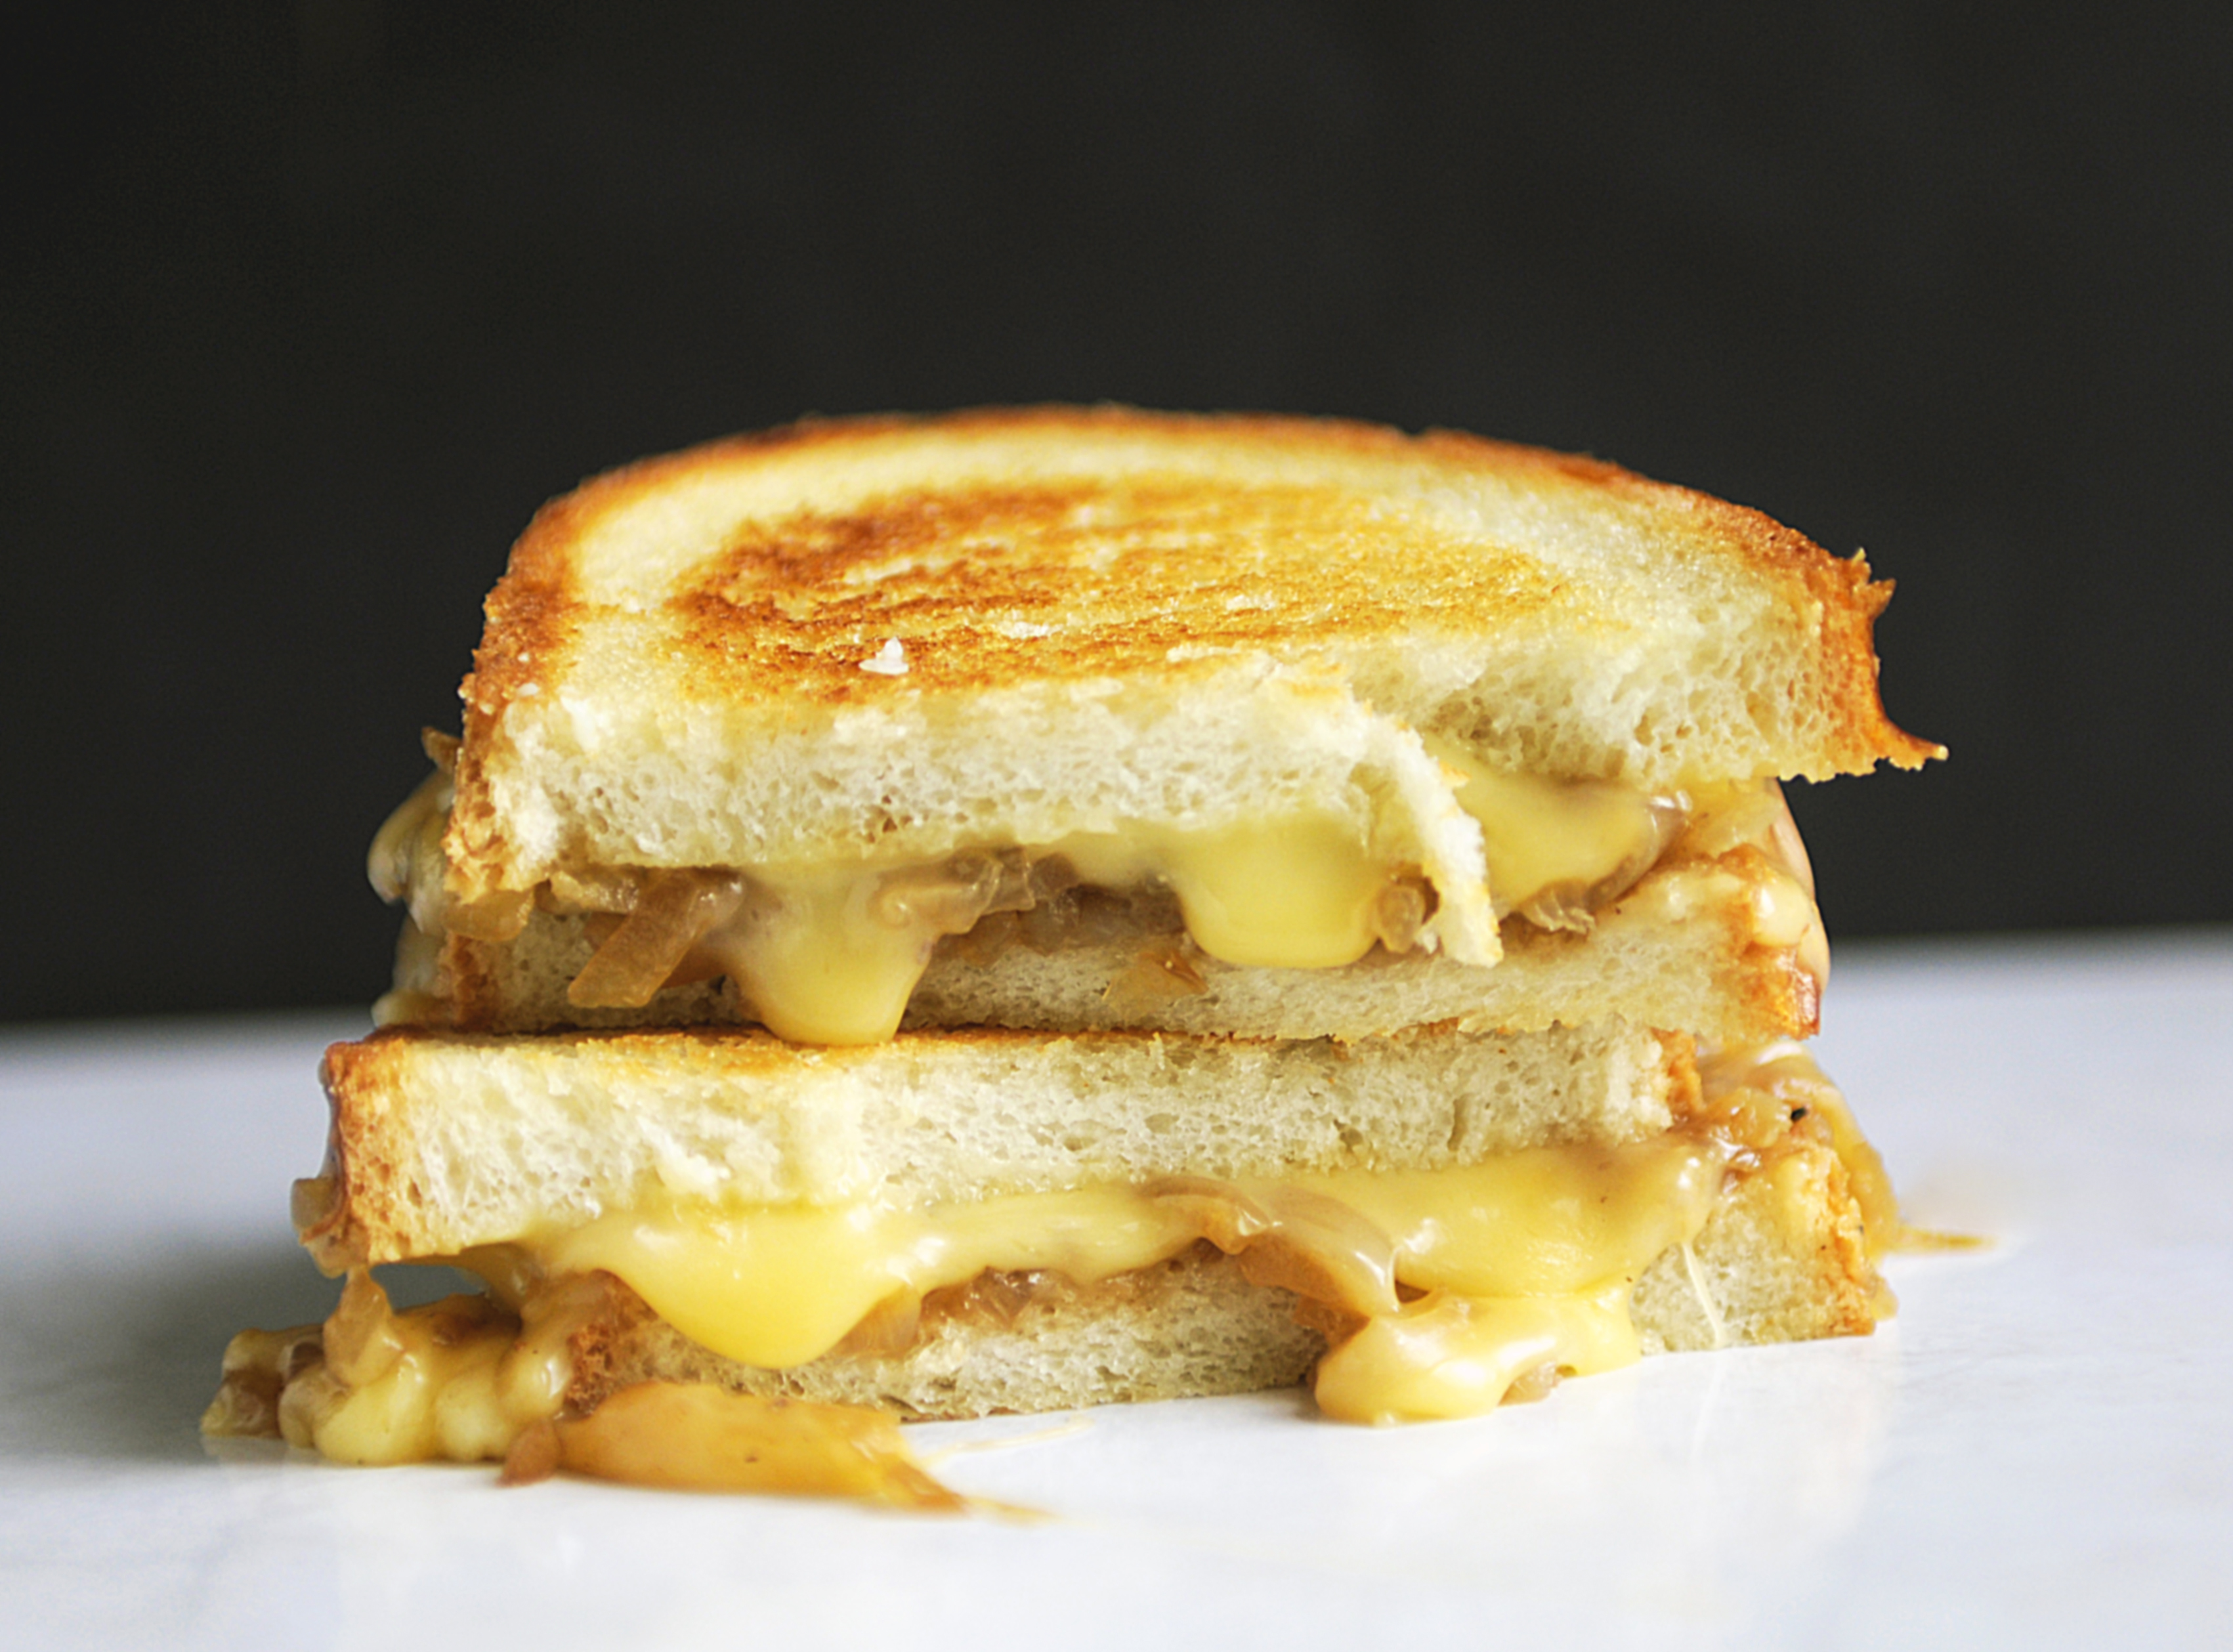 Gooey Gouda and Caramelized Onion Grilled Cheese